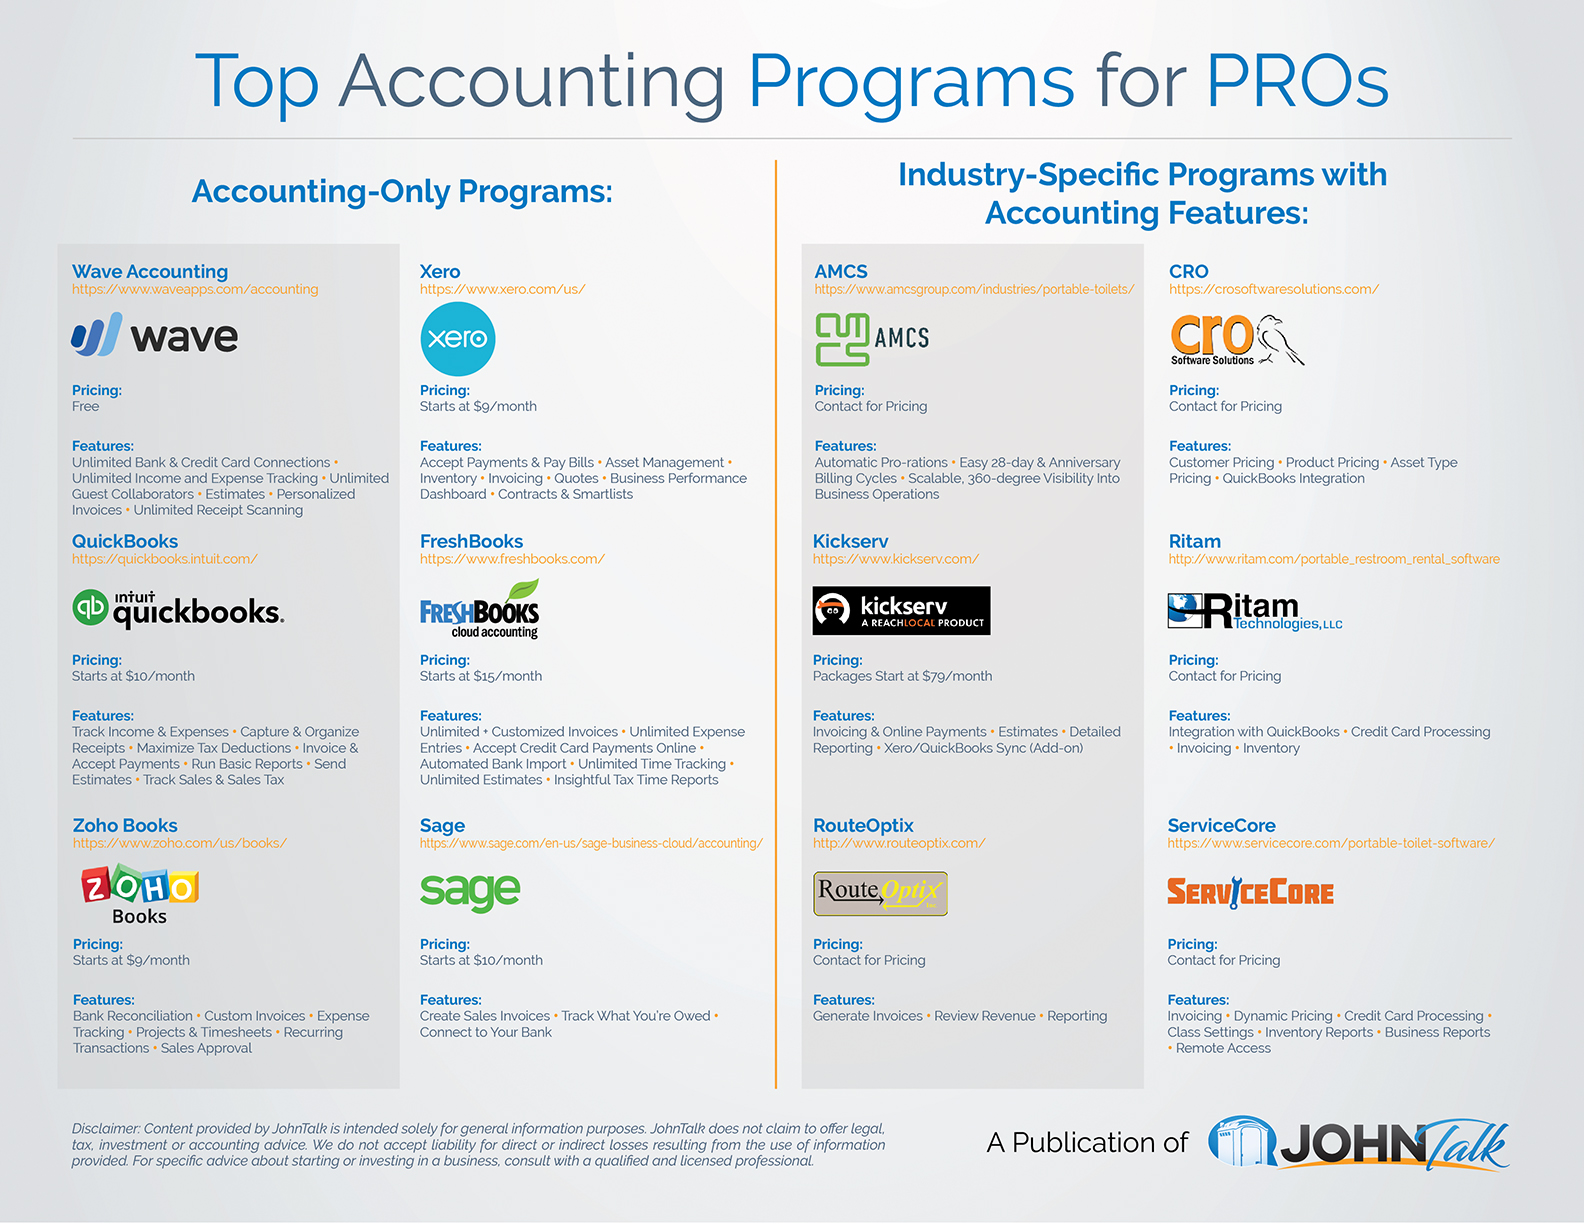 Top Accounting Programs for PROs